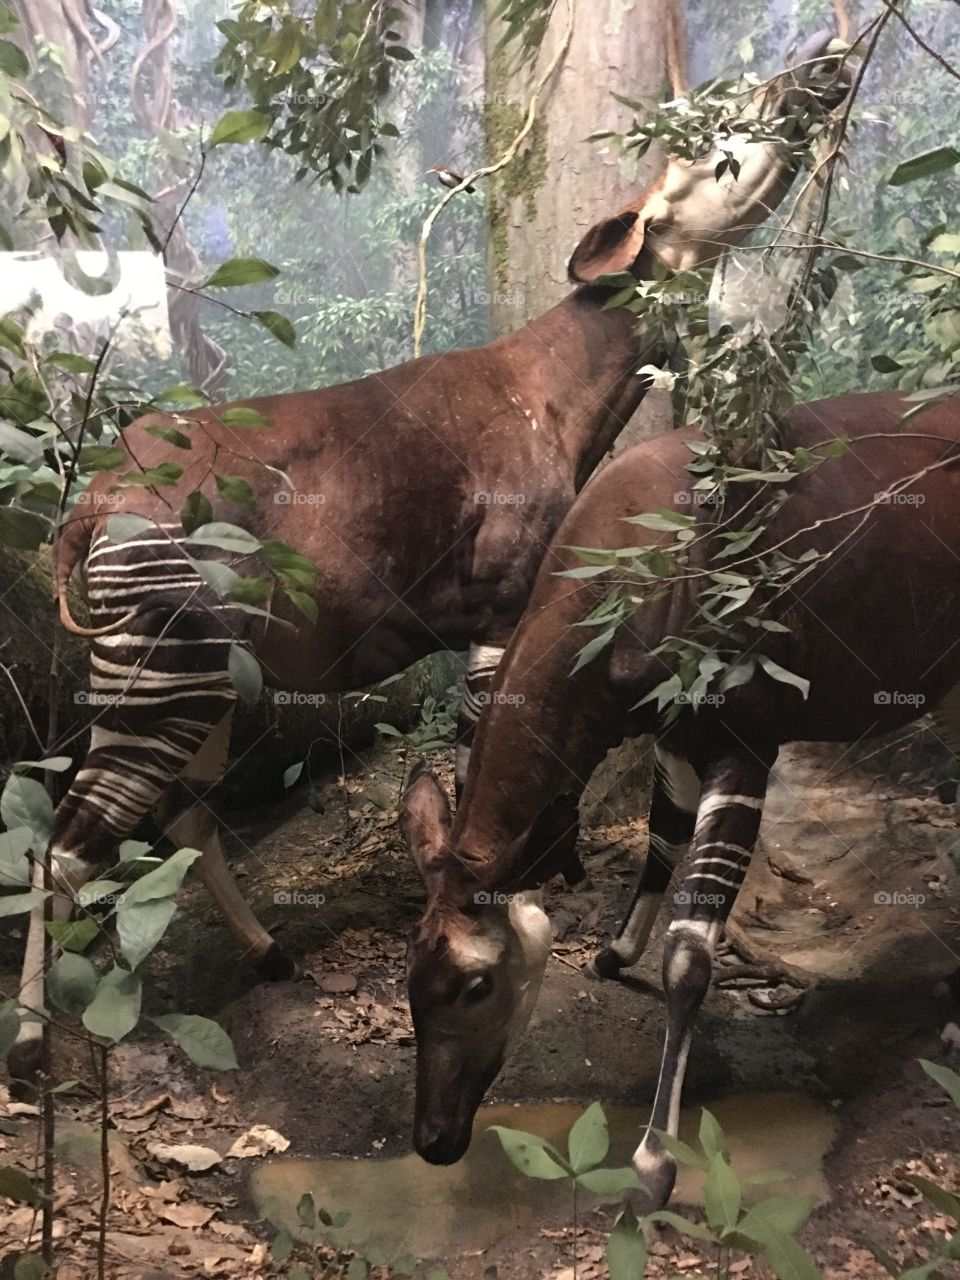 Taxidermy okapi at the Smithsonian Museum of Natural History in New York City.